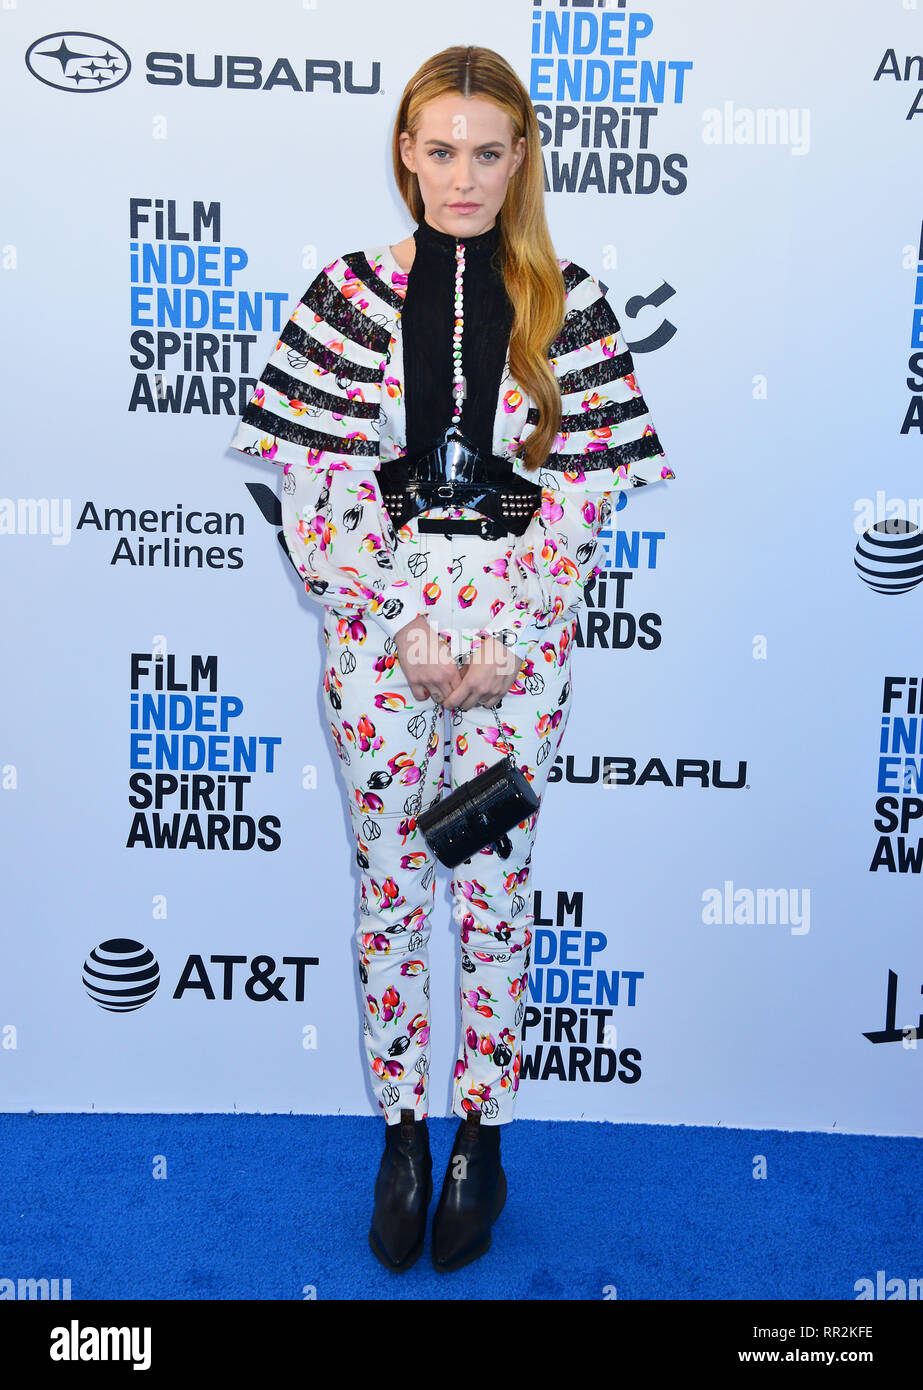 Riley Keough 2019Stock Photos and Images